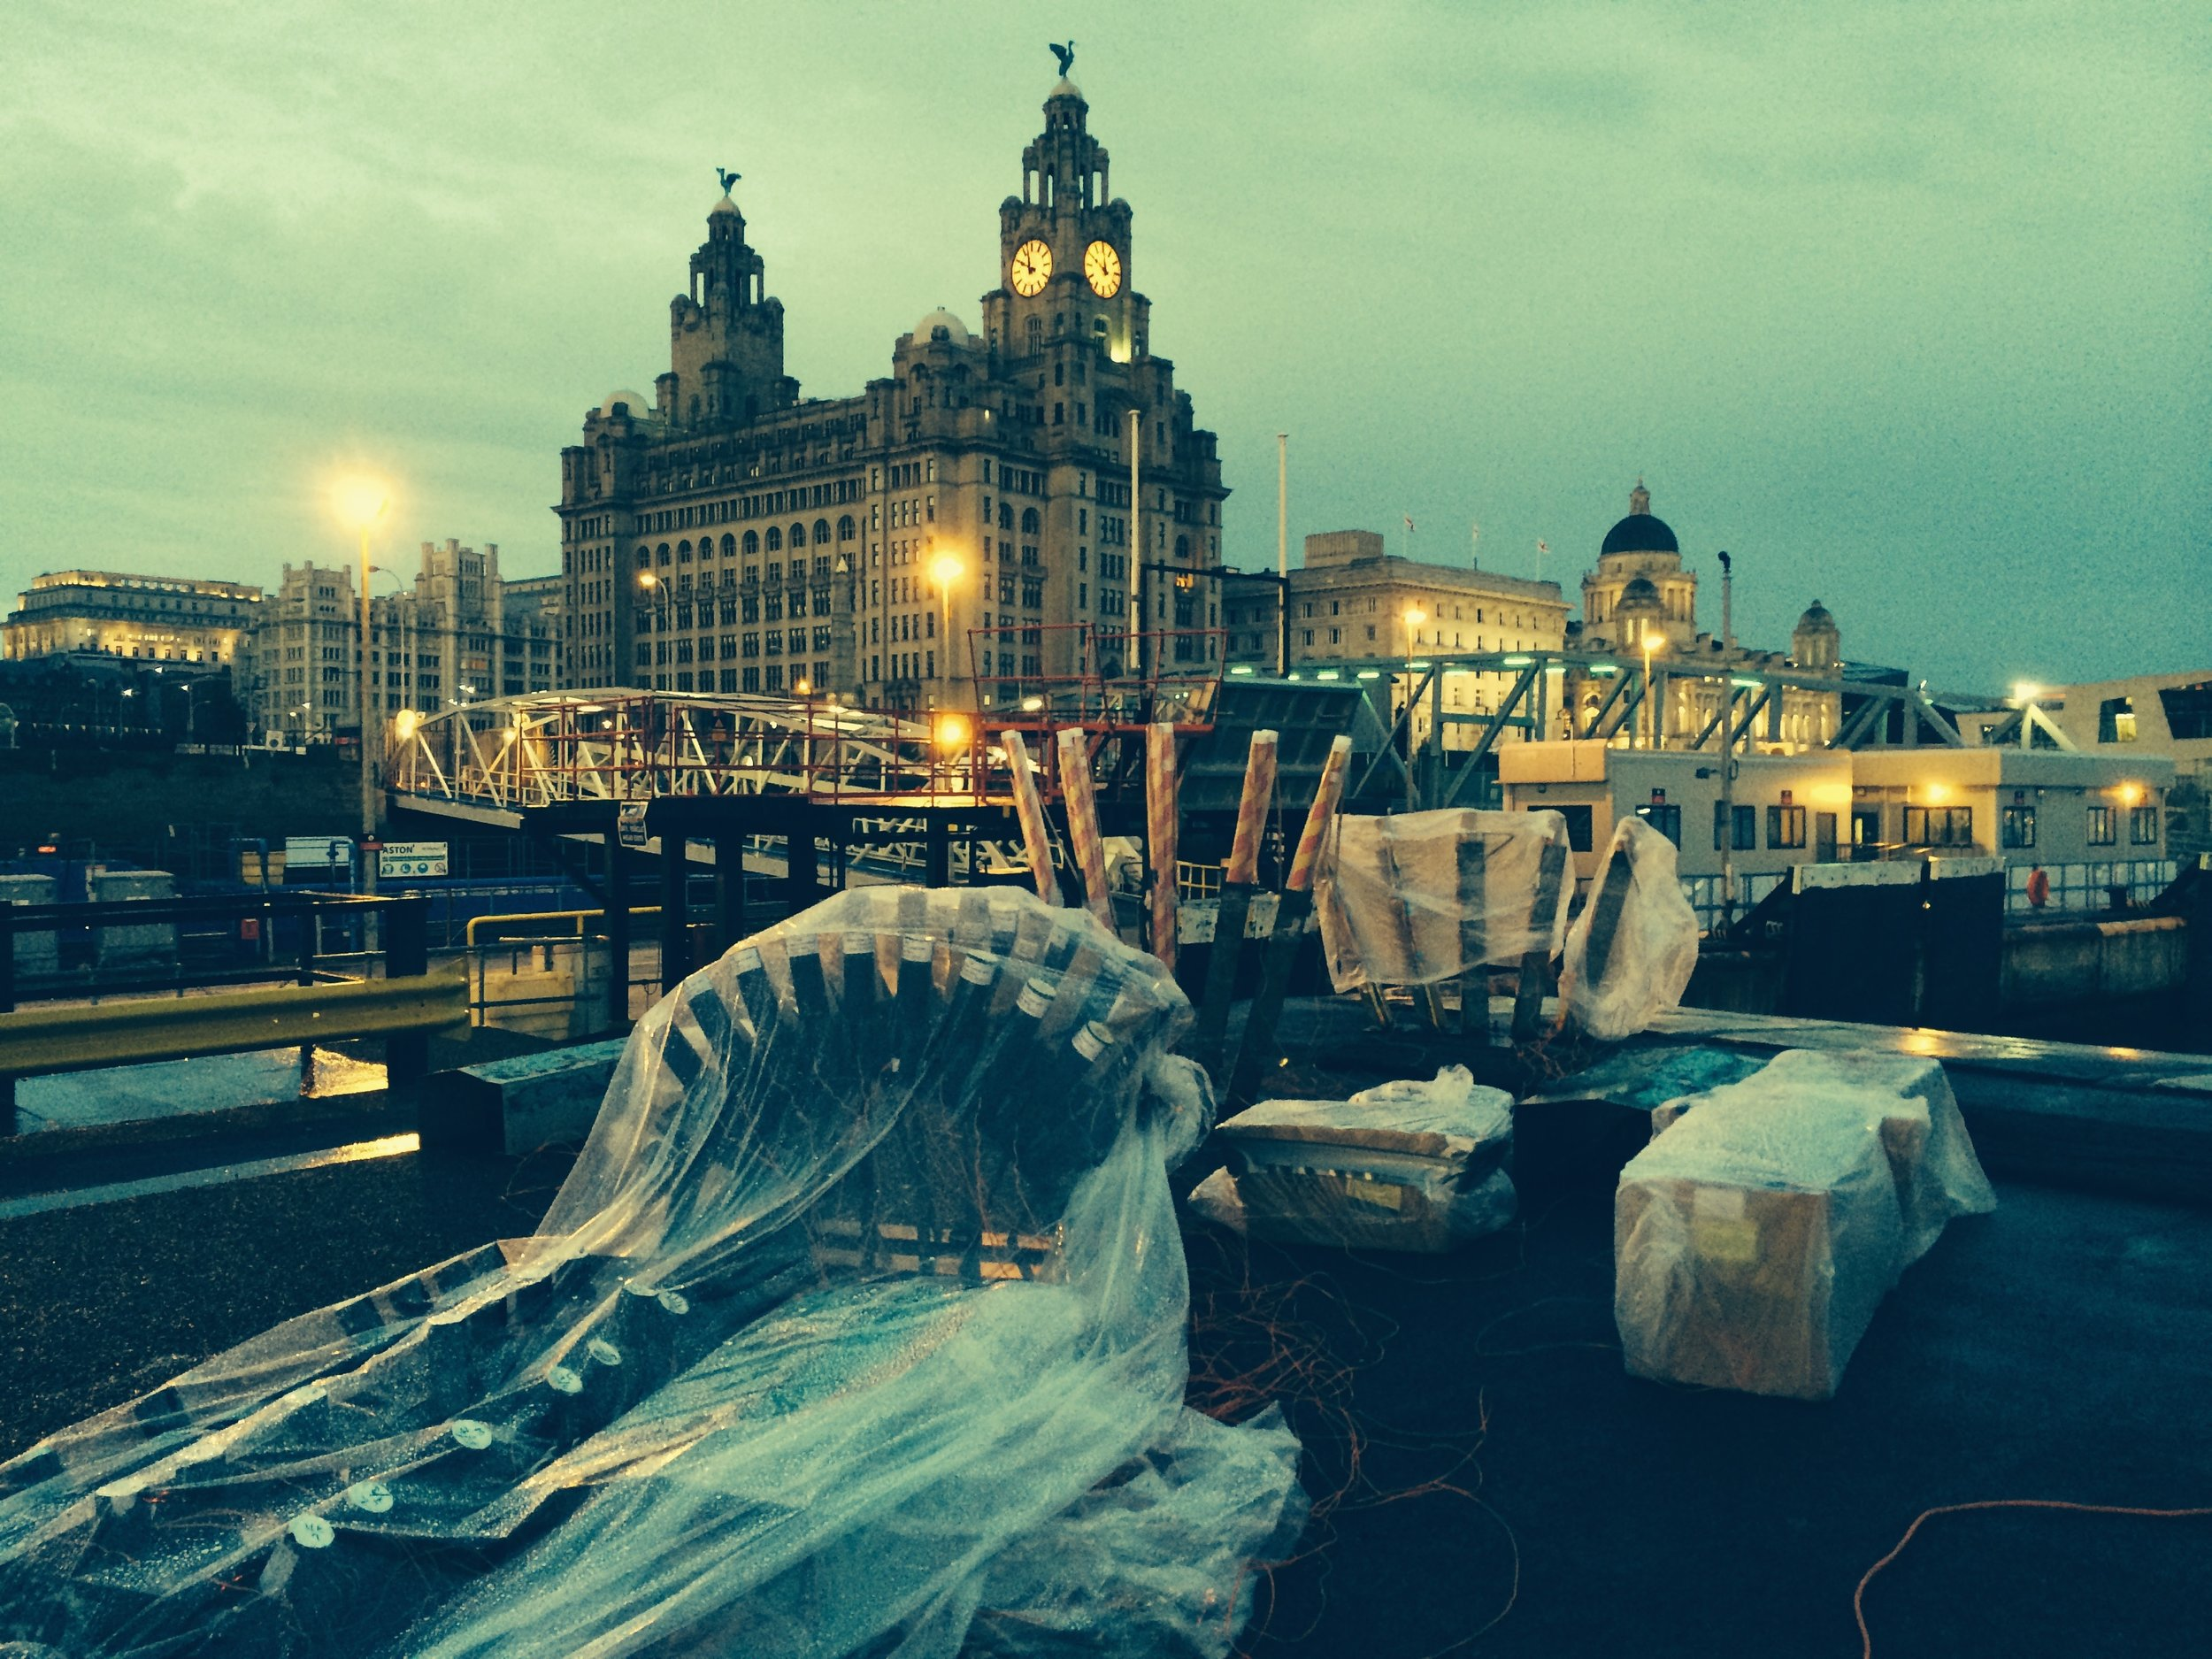 Local Authorities - Liverpool Fireworks Fired From a pontoon